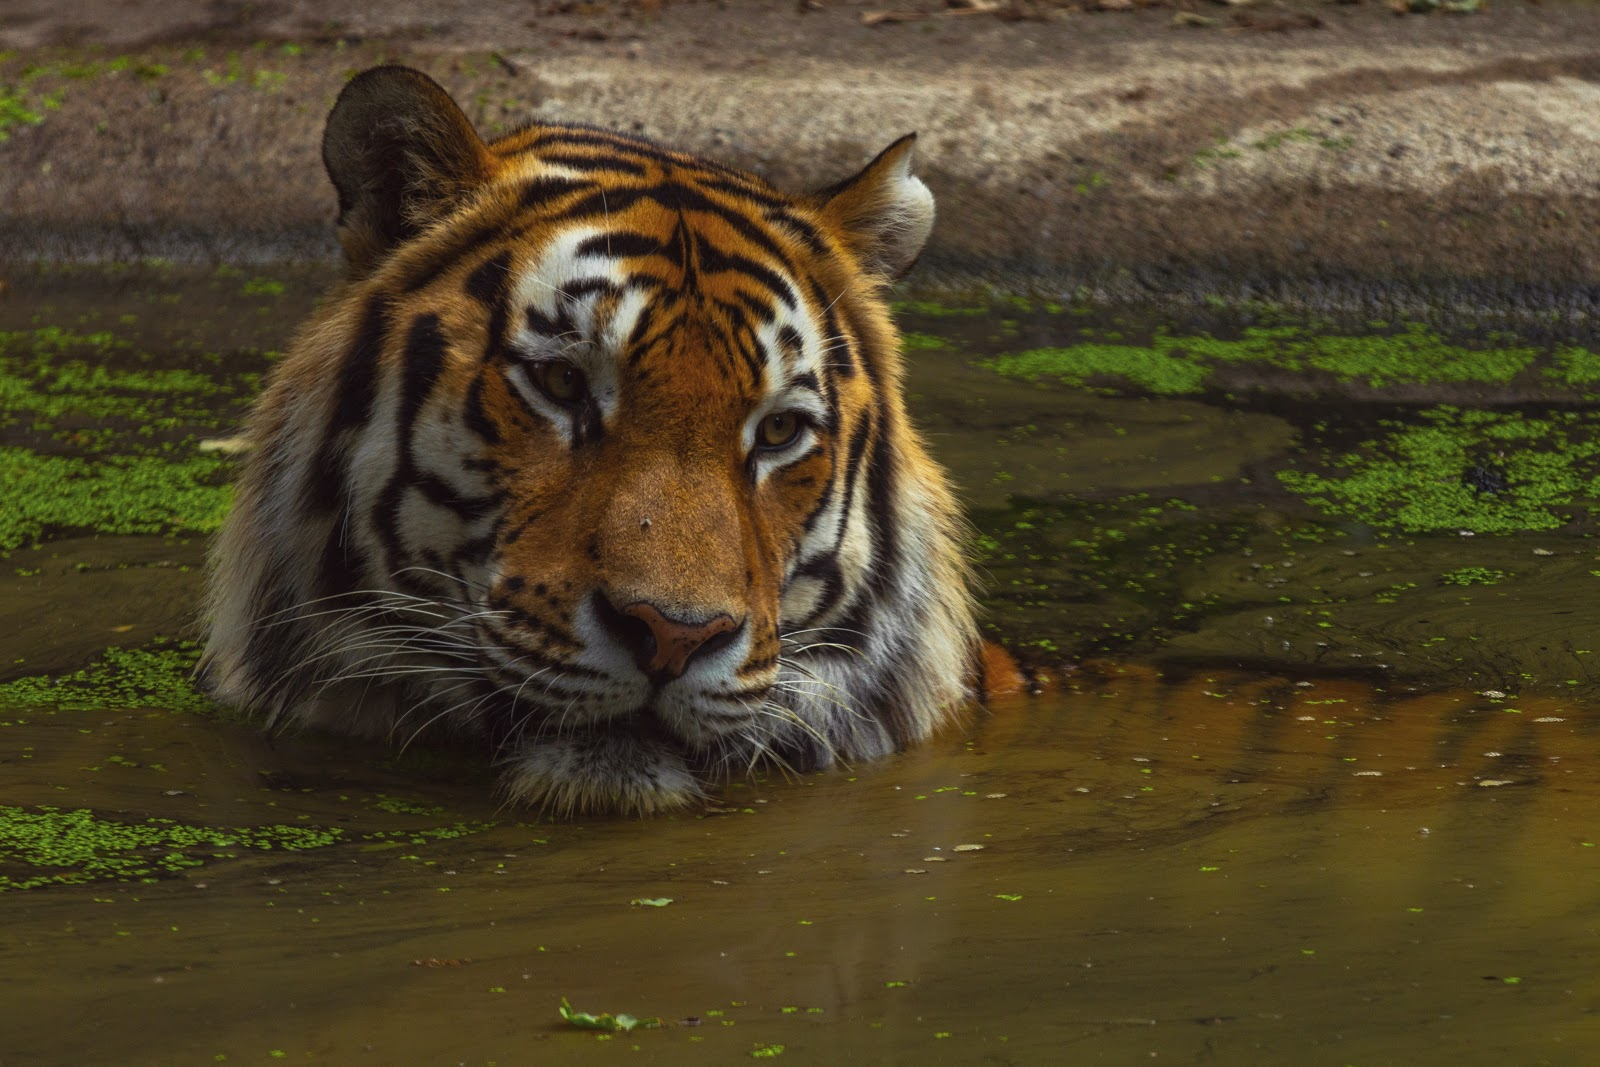 tiger-relaxing-in-water-images